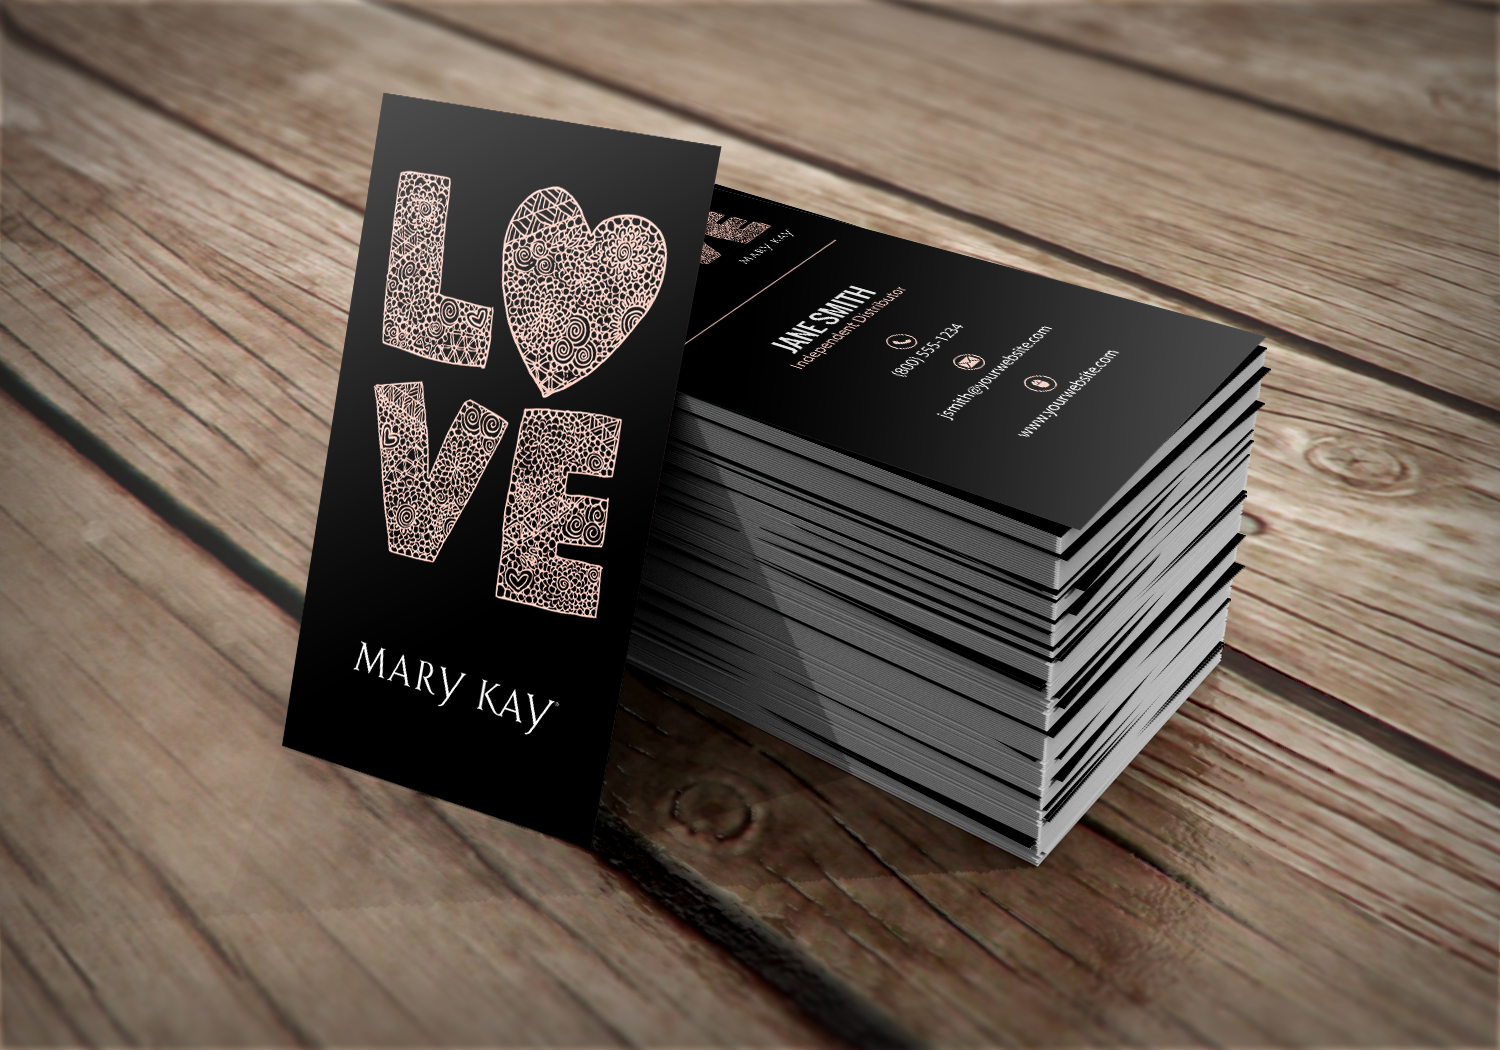 Mary Kay Business Cards | Mary-Kay Business Cards | Mary Kay, Mary - Free Printable Mary Kay Business Cards